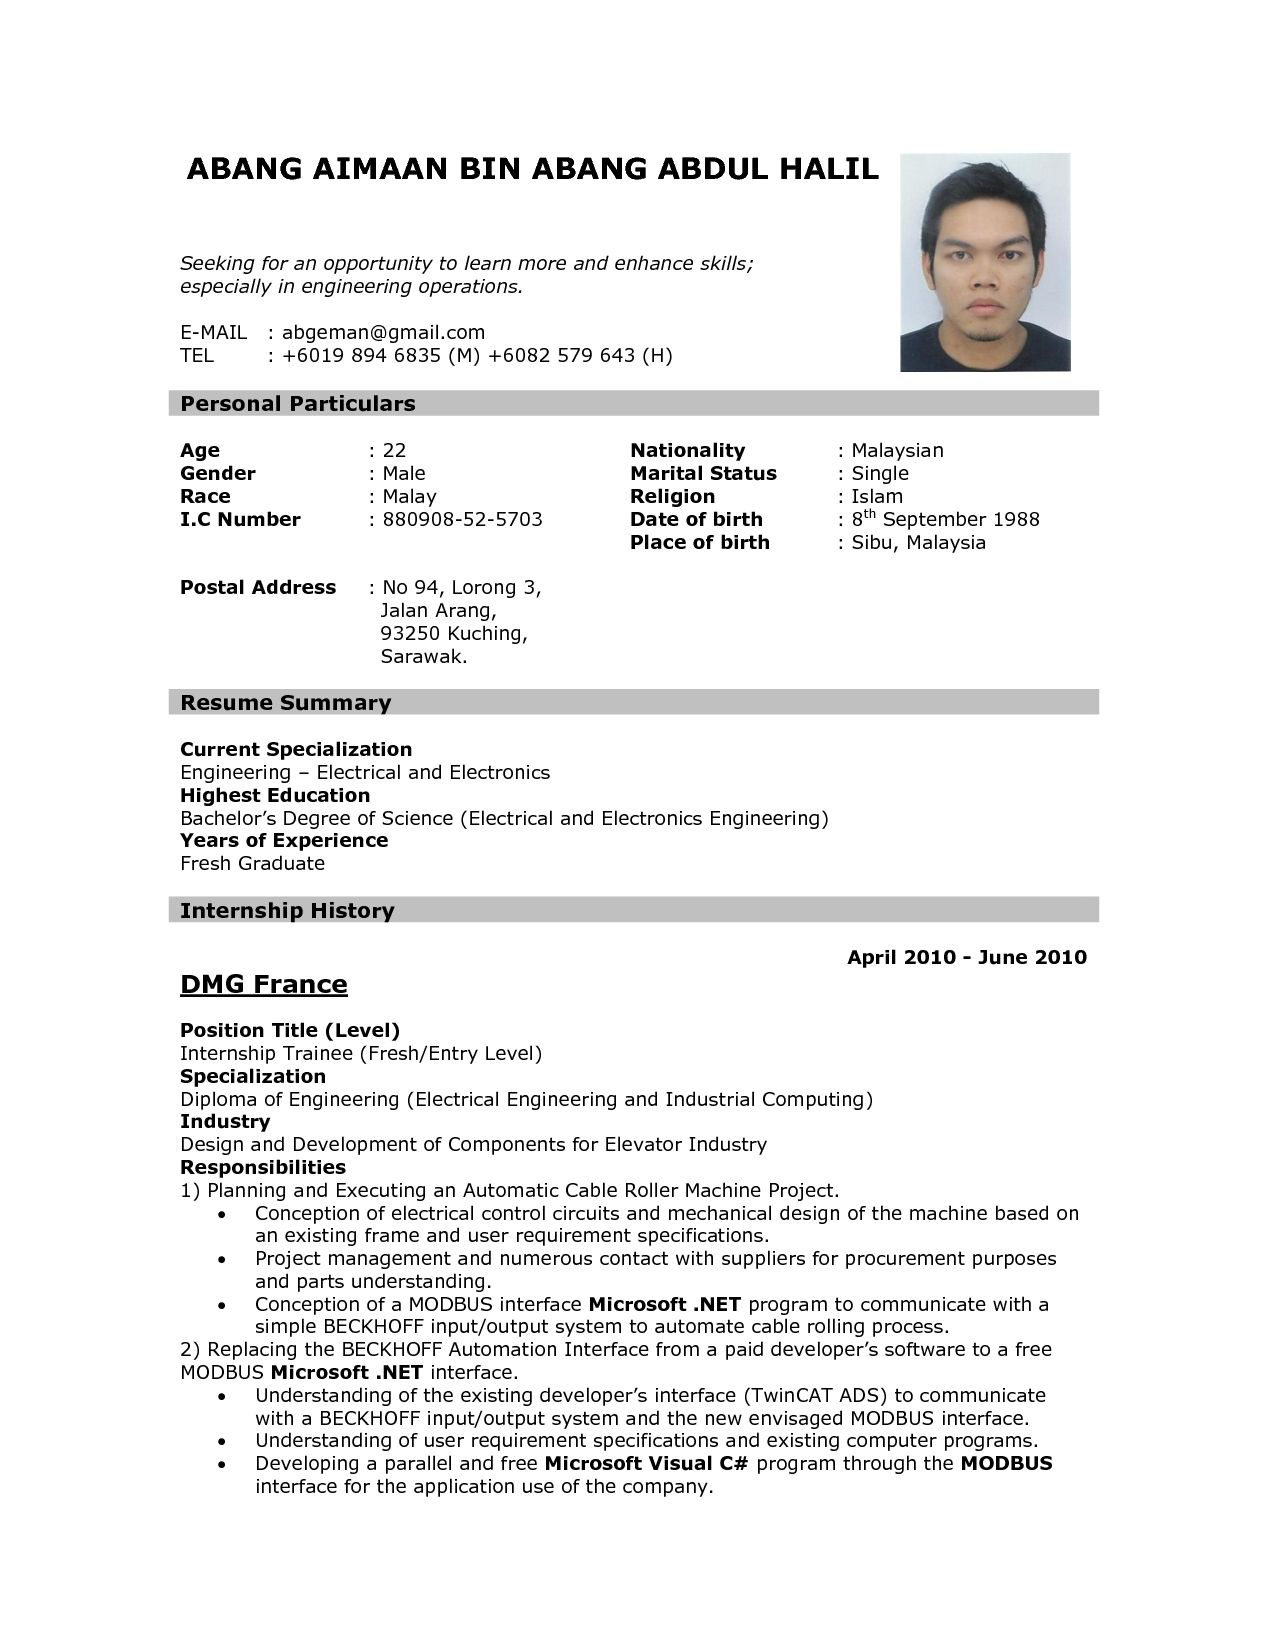 Sample Resume For Job Application sample resume letter for job application cv how to write an resume letter resume for job Format Of Resume For Job Application To Download Data Sample Resume The Sample Resume For Applying